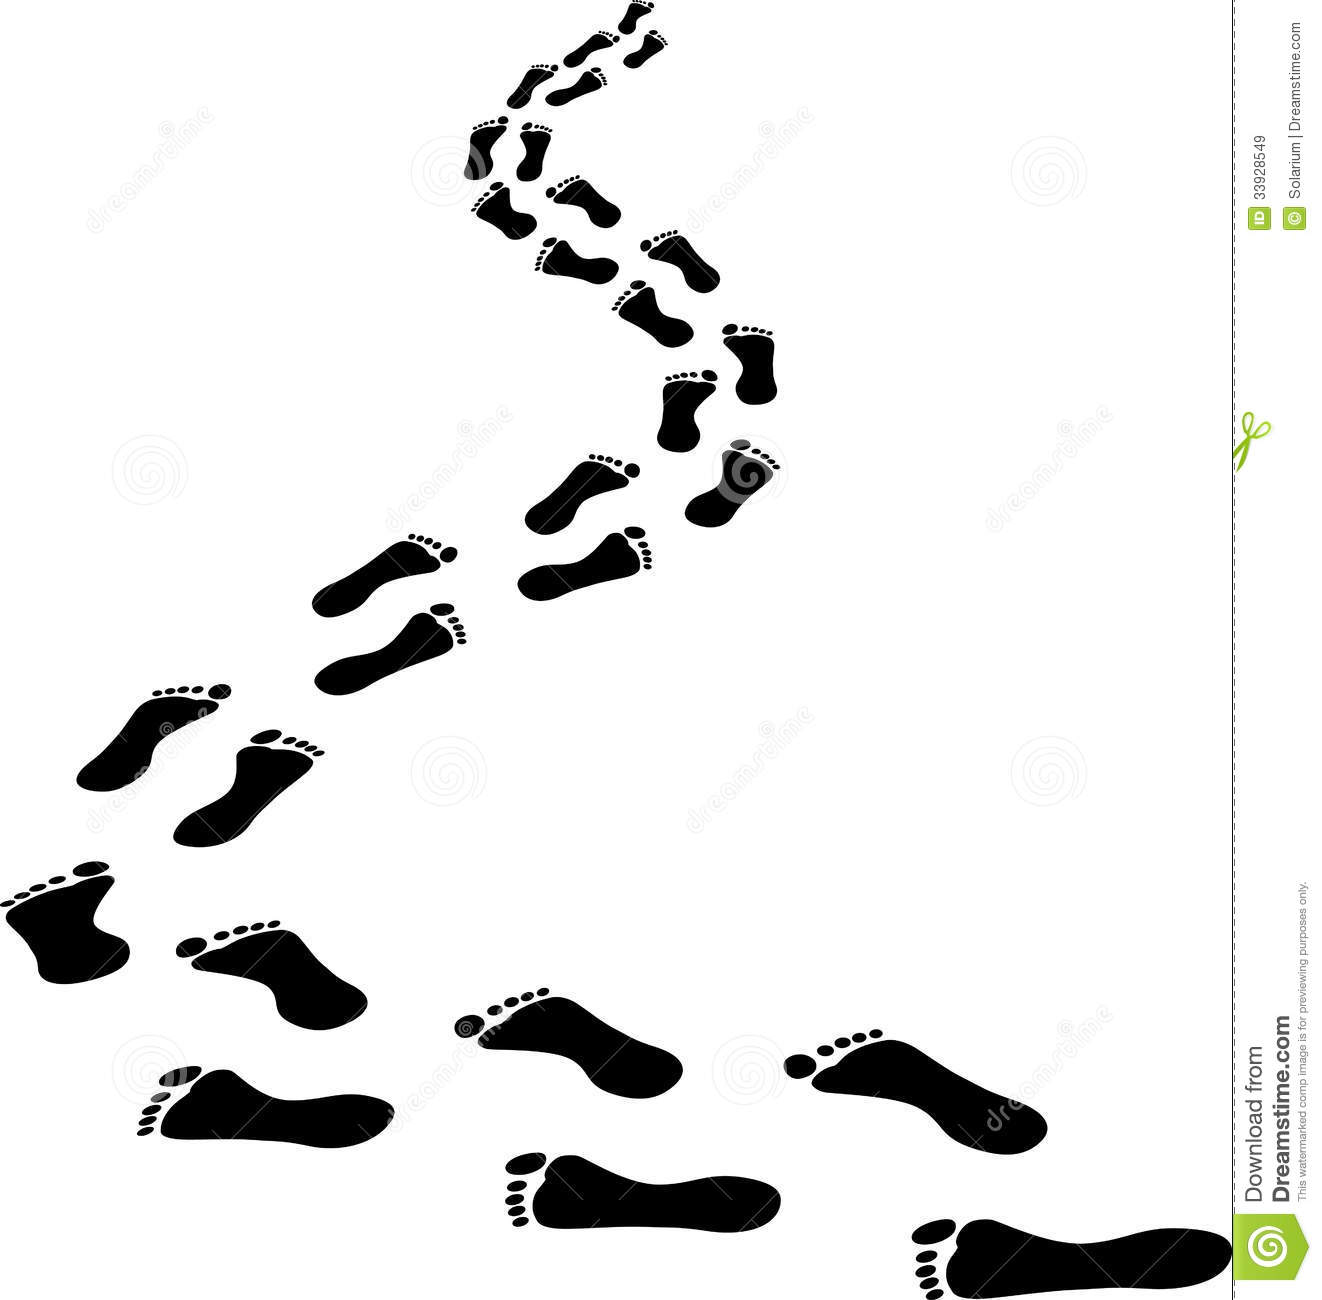 Free clipart footprints in the sand freeuse download Footprints In The Sand Drawing | Free download best Footprints In ... freeuse download